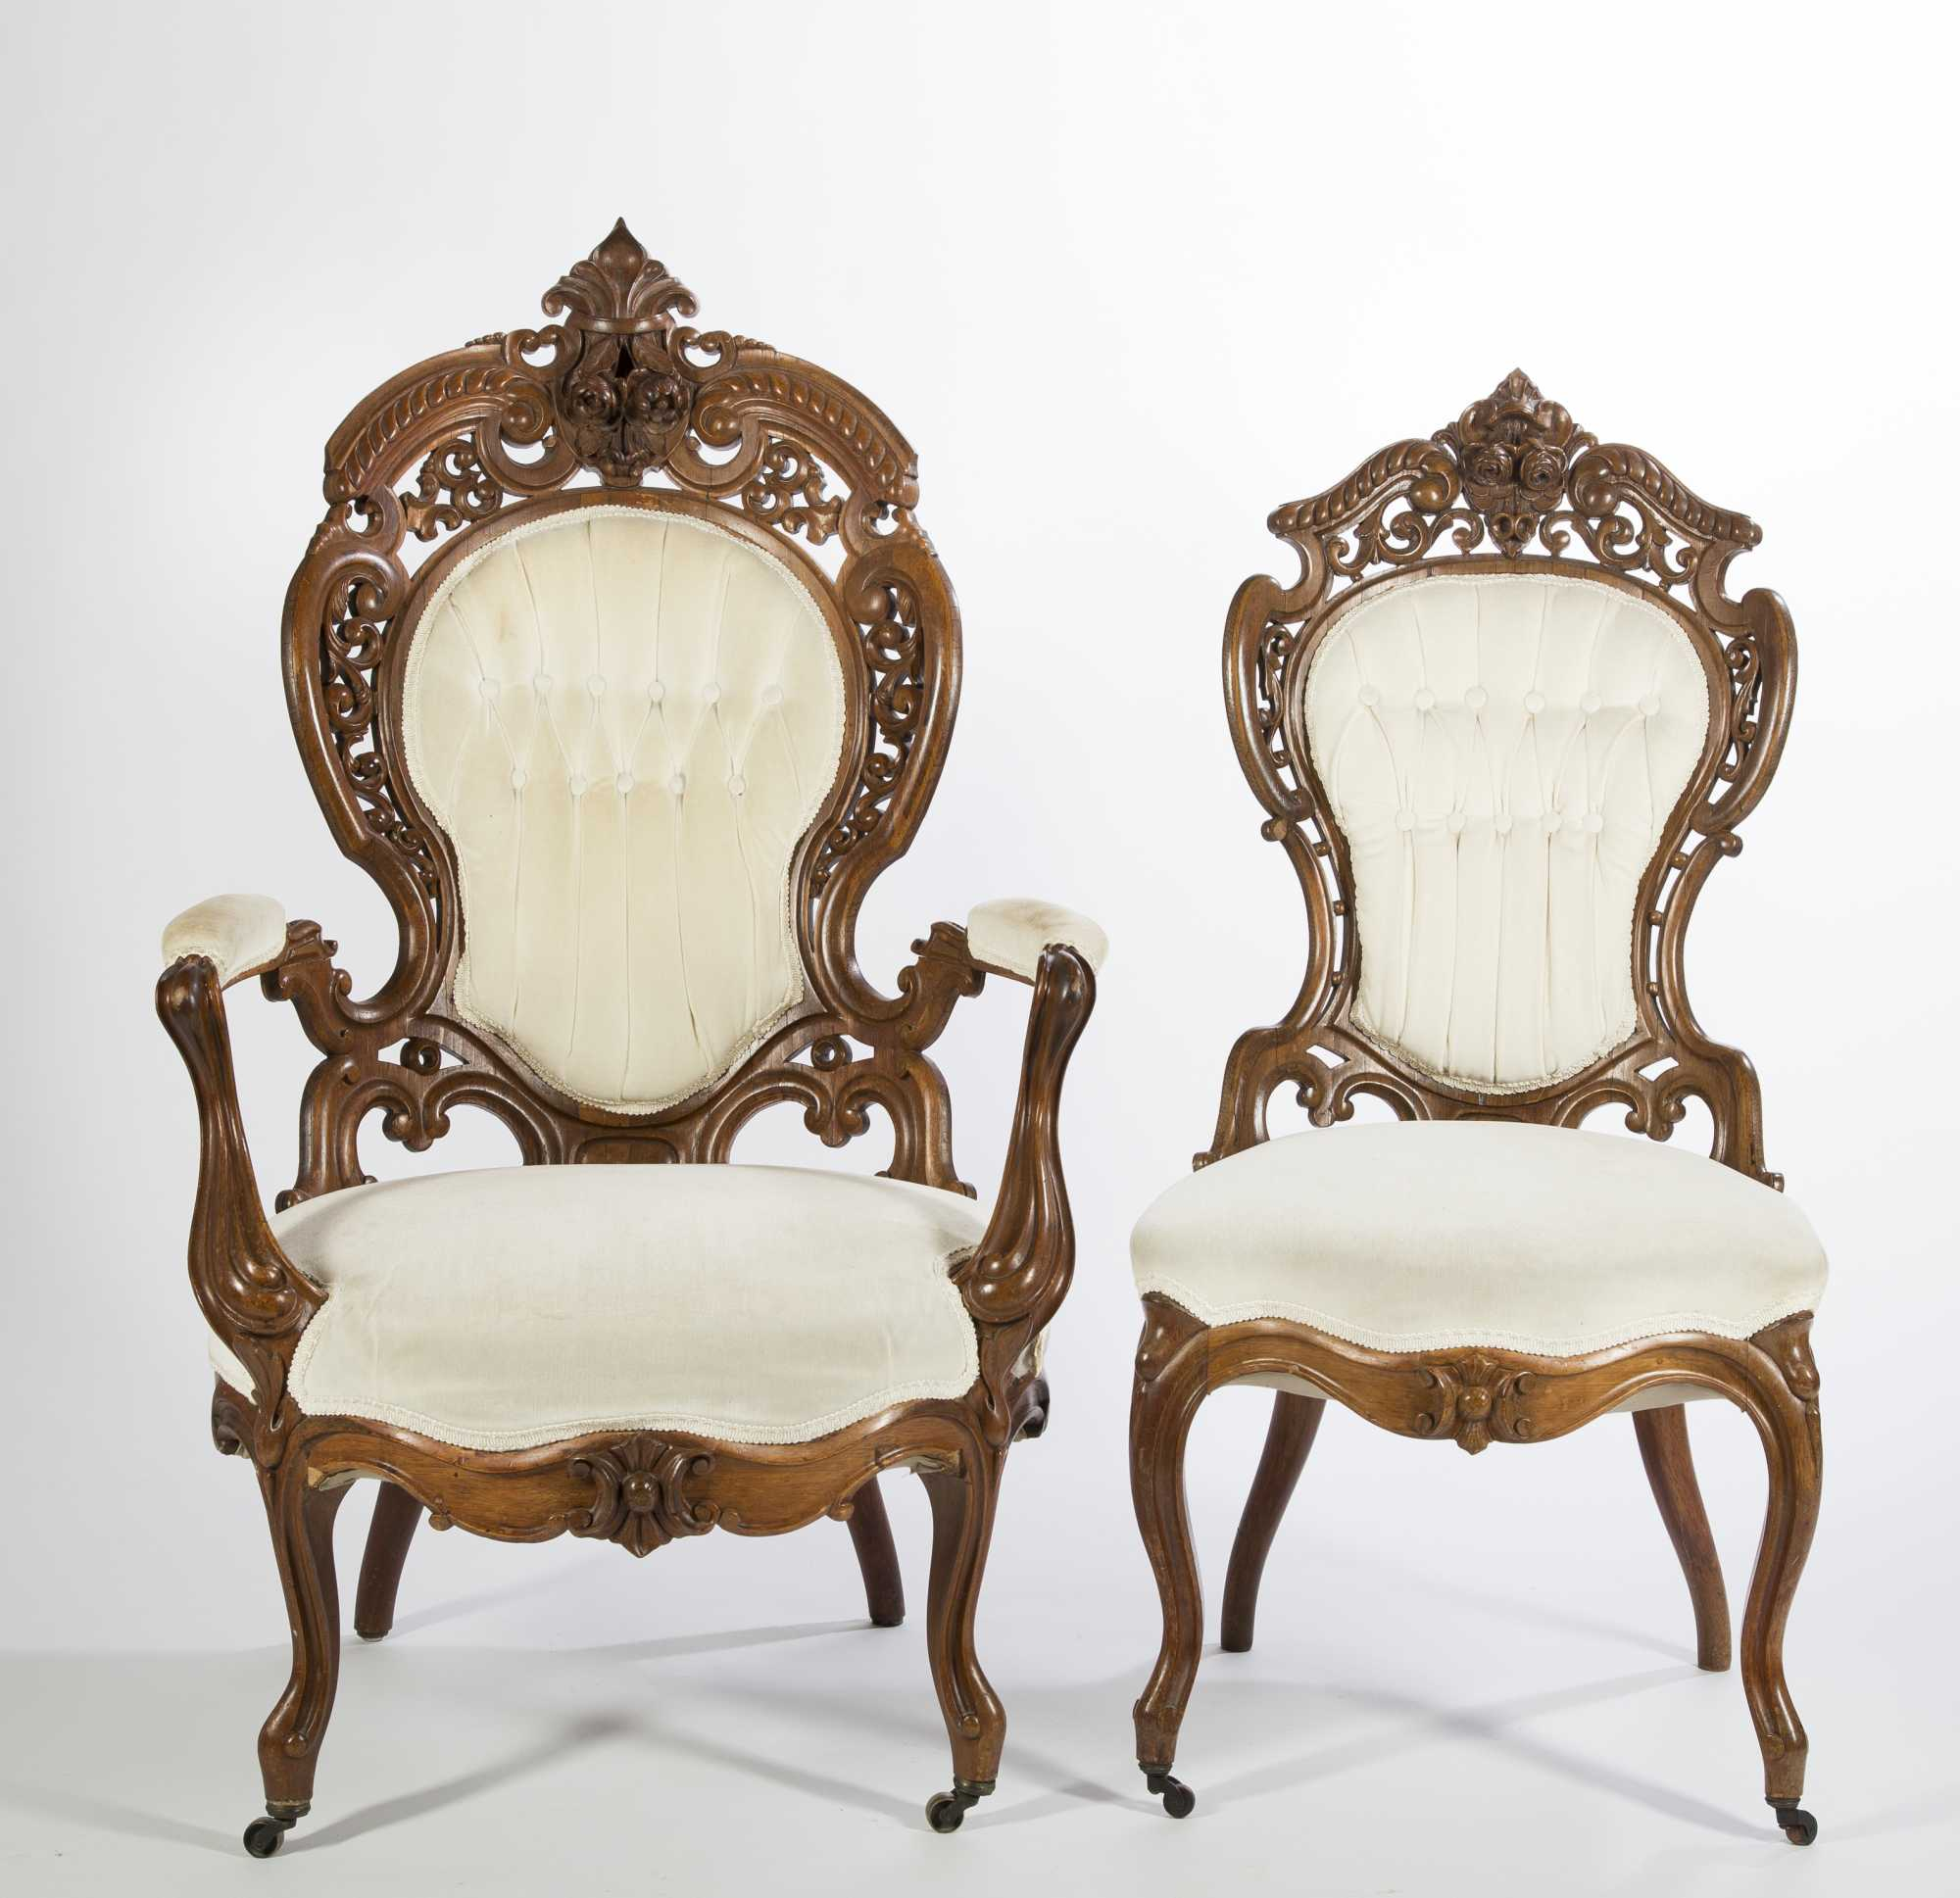 Victorian style furniture chair - John Henry Belter Victorian Chairs